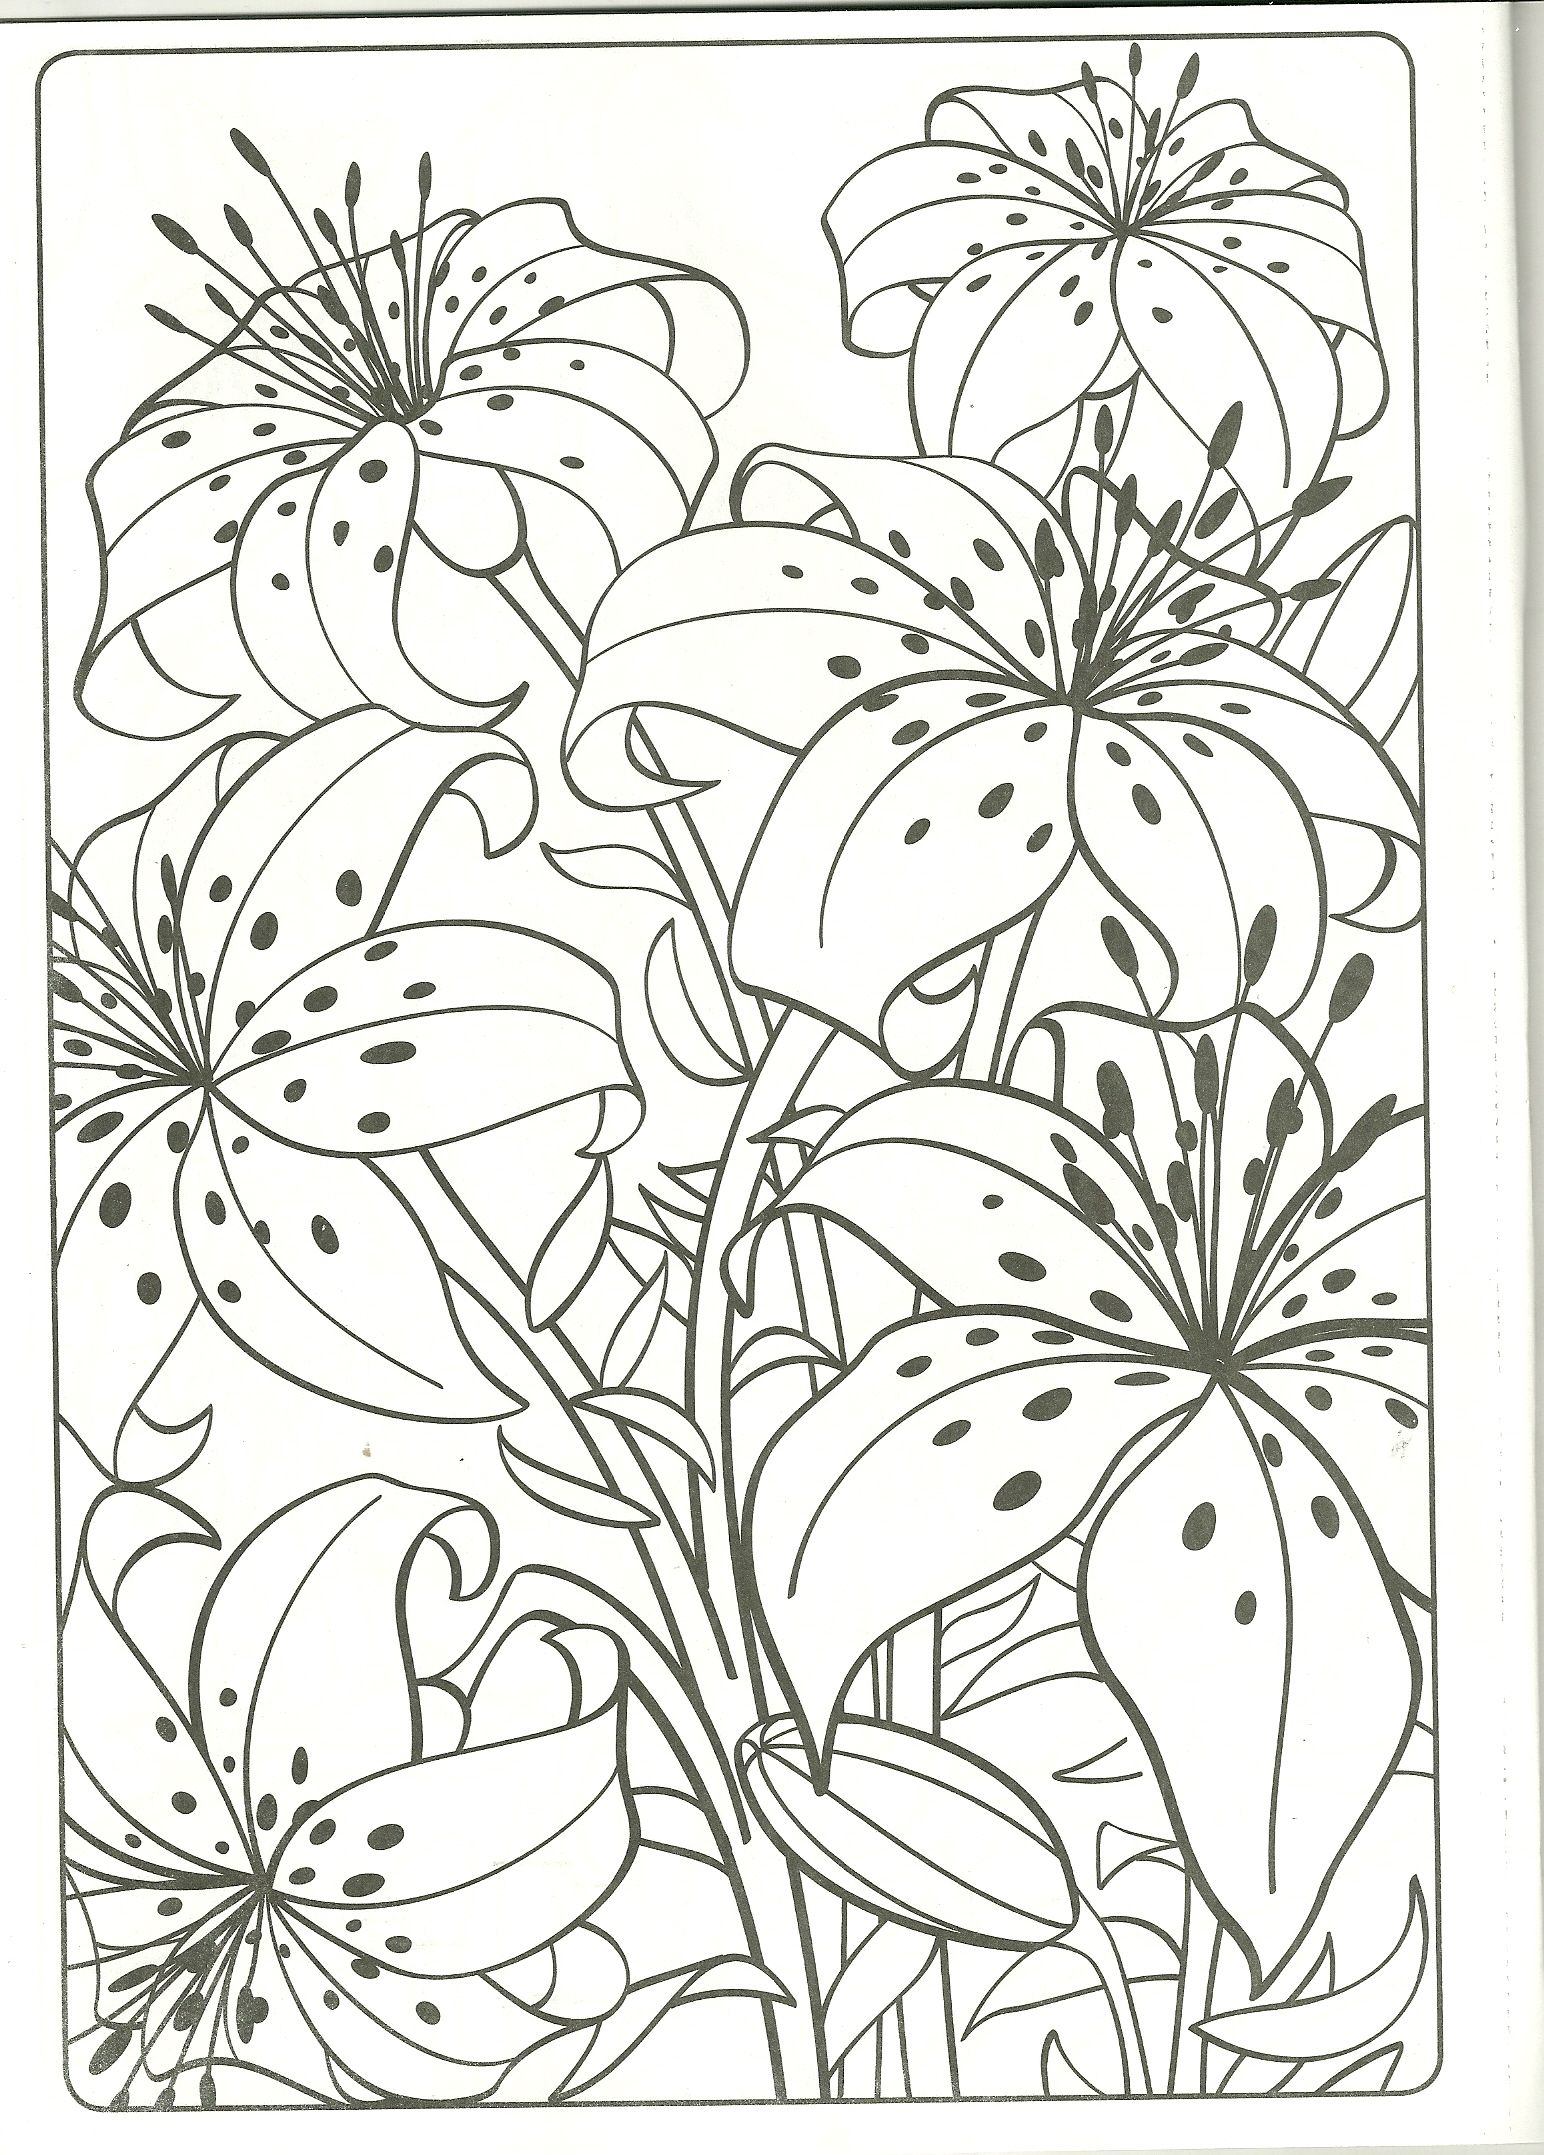 Tiger Lilly Coloring Page It S My Fave Flower Tiger Lily Coloring Pages Wood Burning Patterns